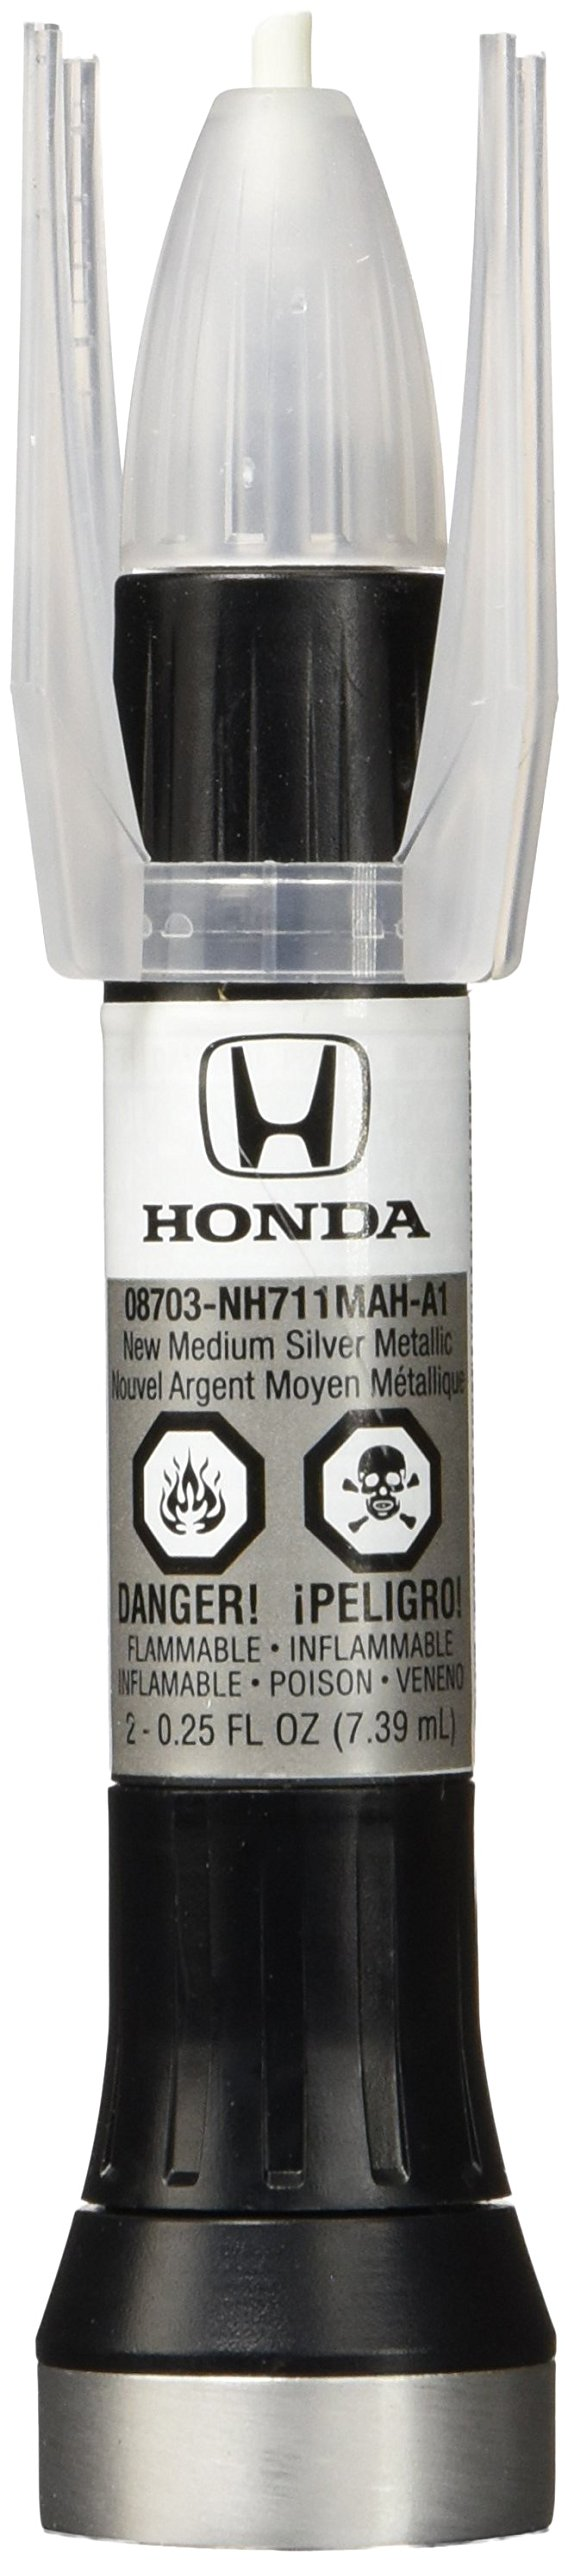 Genuine Honda (08703-NH711MAH-PN) Touch-Up Paint, Whistler Silver Metallic, Color Code: NH711M